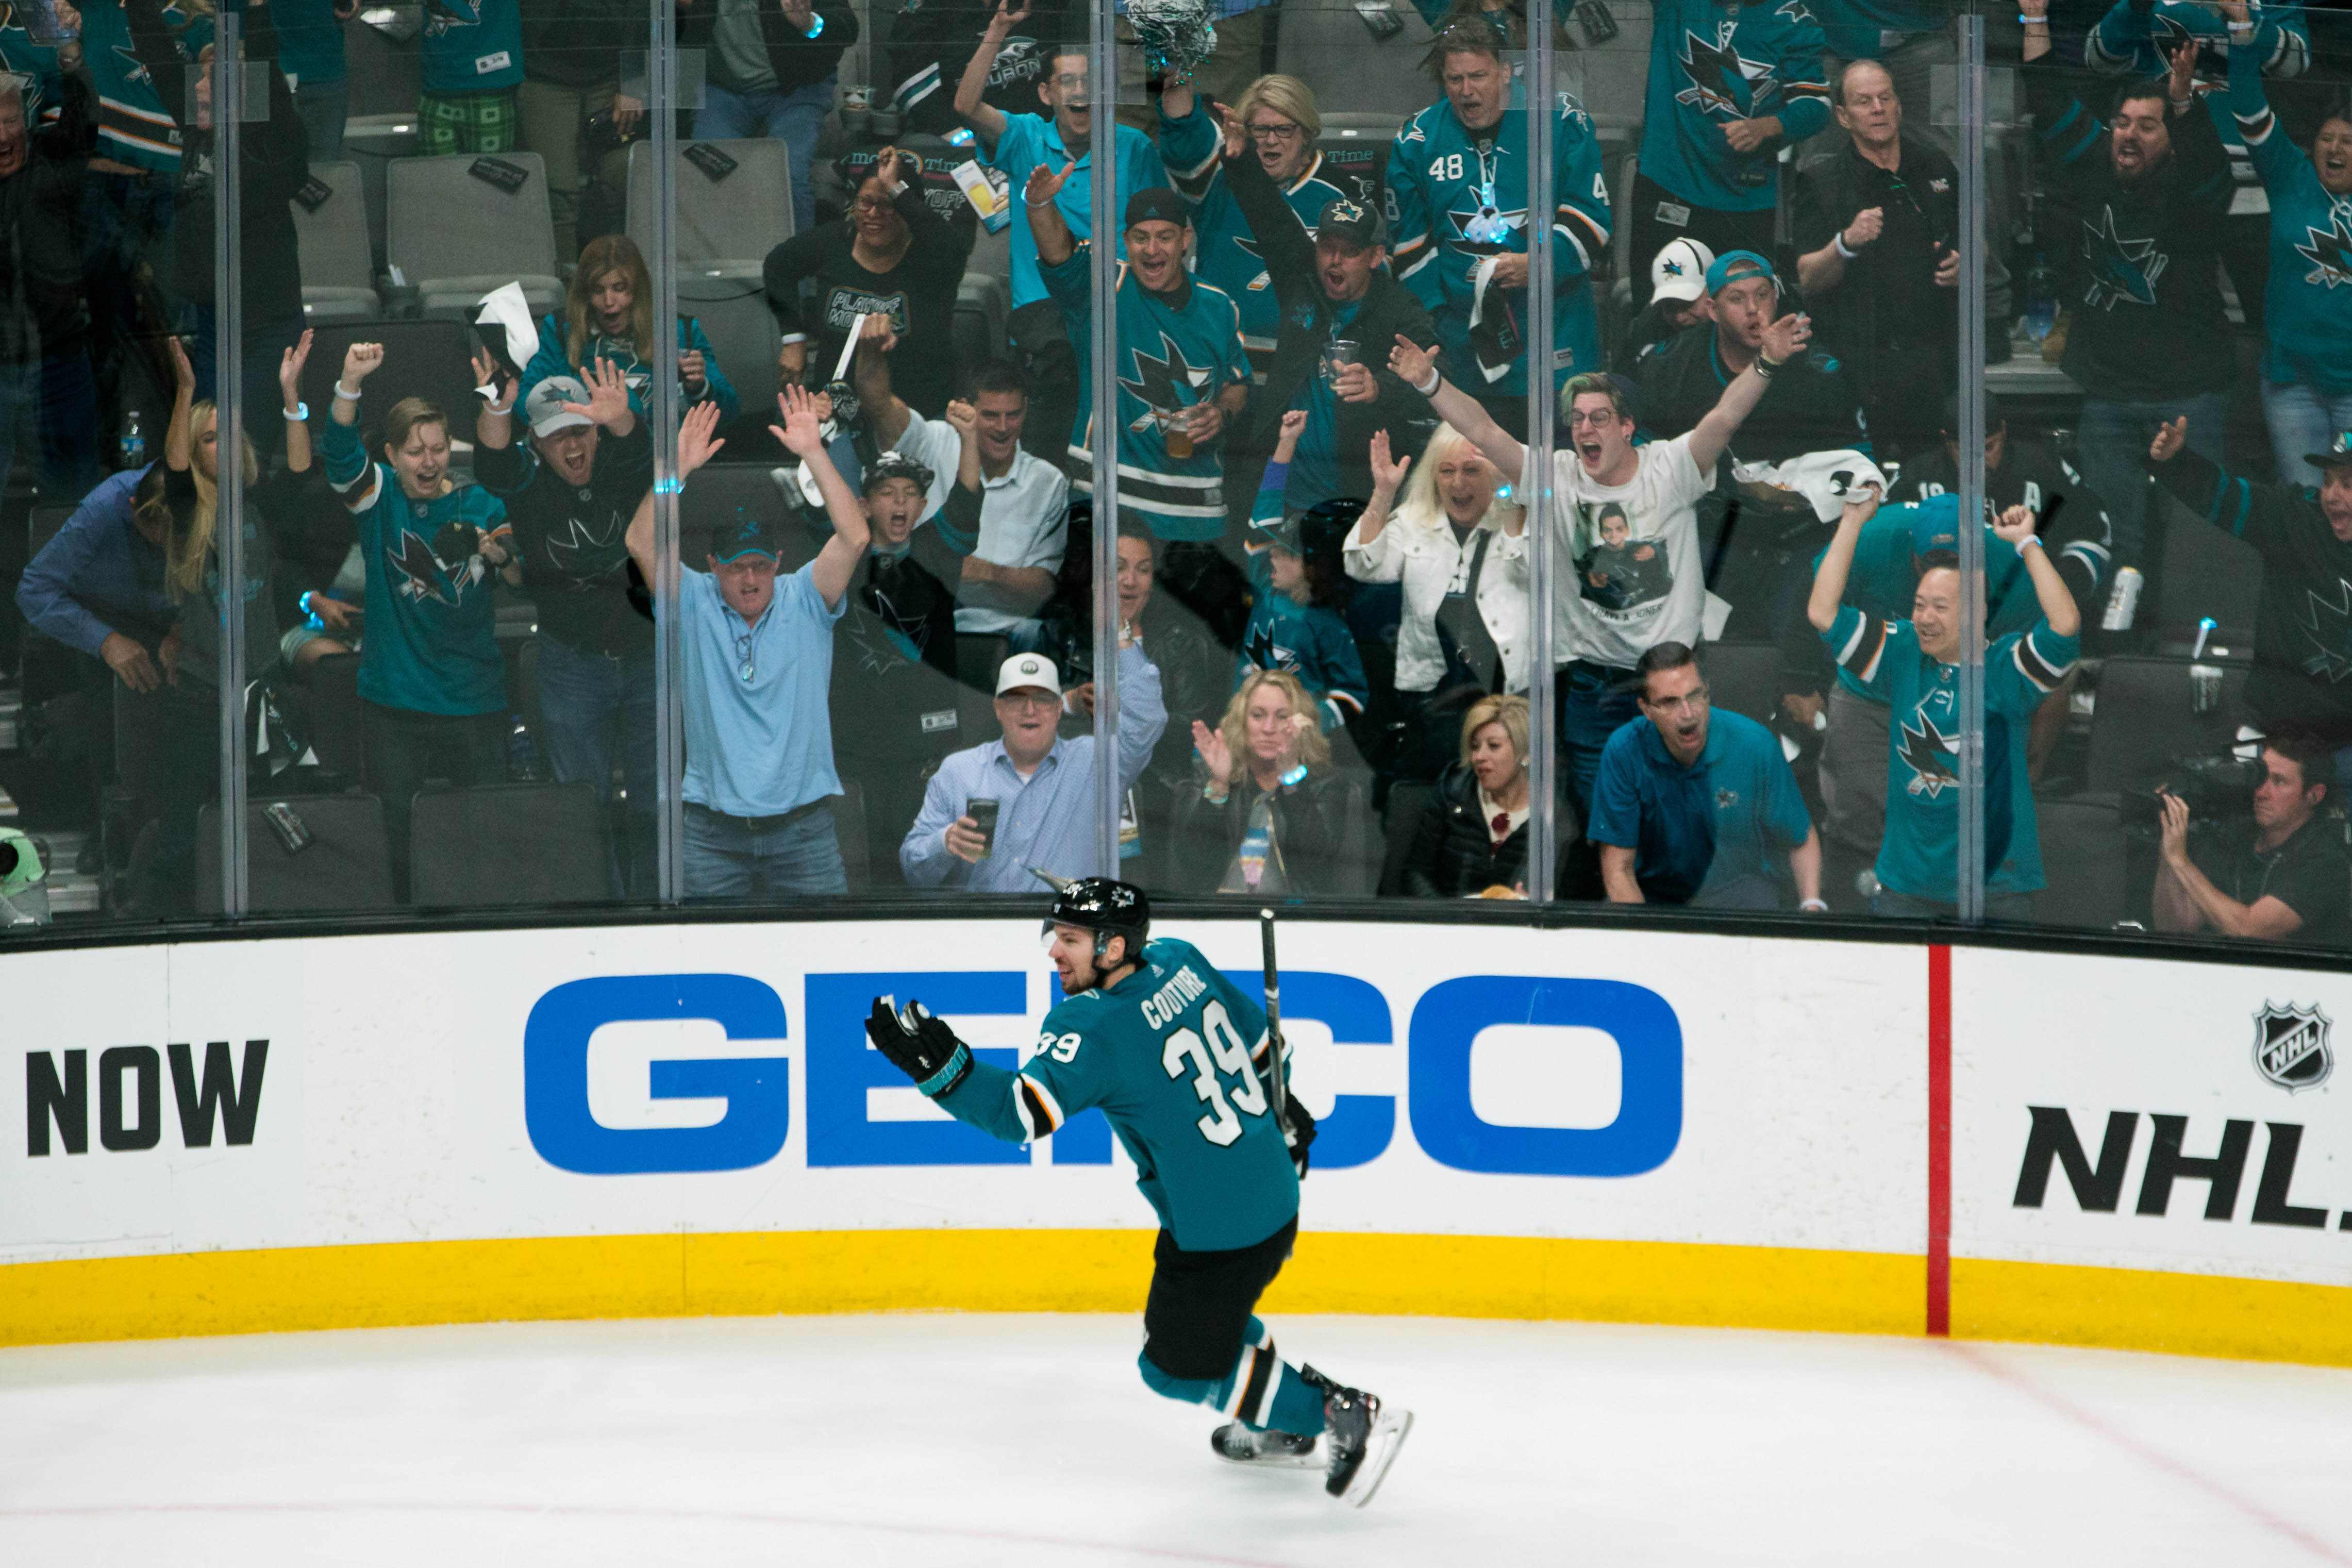 May 13, 2019; San Jose, CA, USA; San Jose Sharks center Logan Couture celebrates after scoring a goal against St. Louis Blues in the second period of Game 2 of the Western Conference Final of the 2019 Stanley Cup Playoffs at SAP Center.